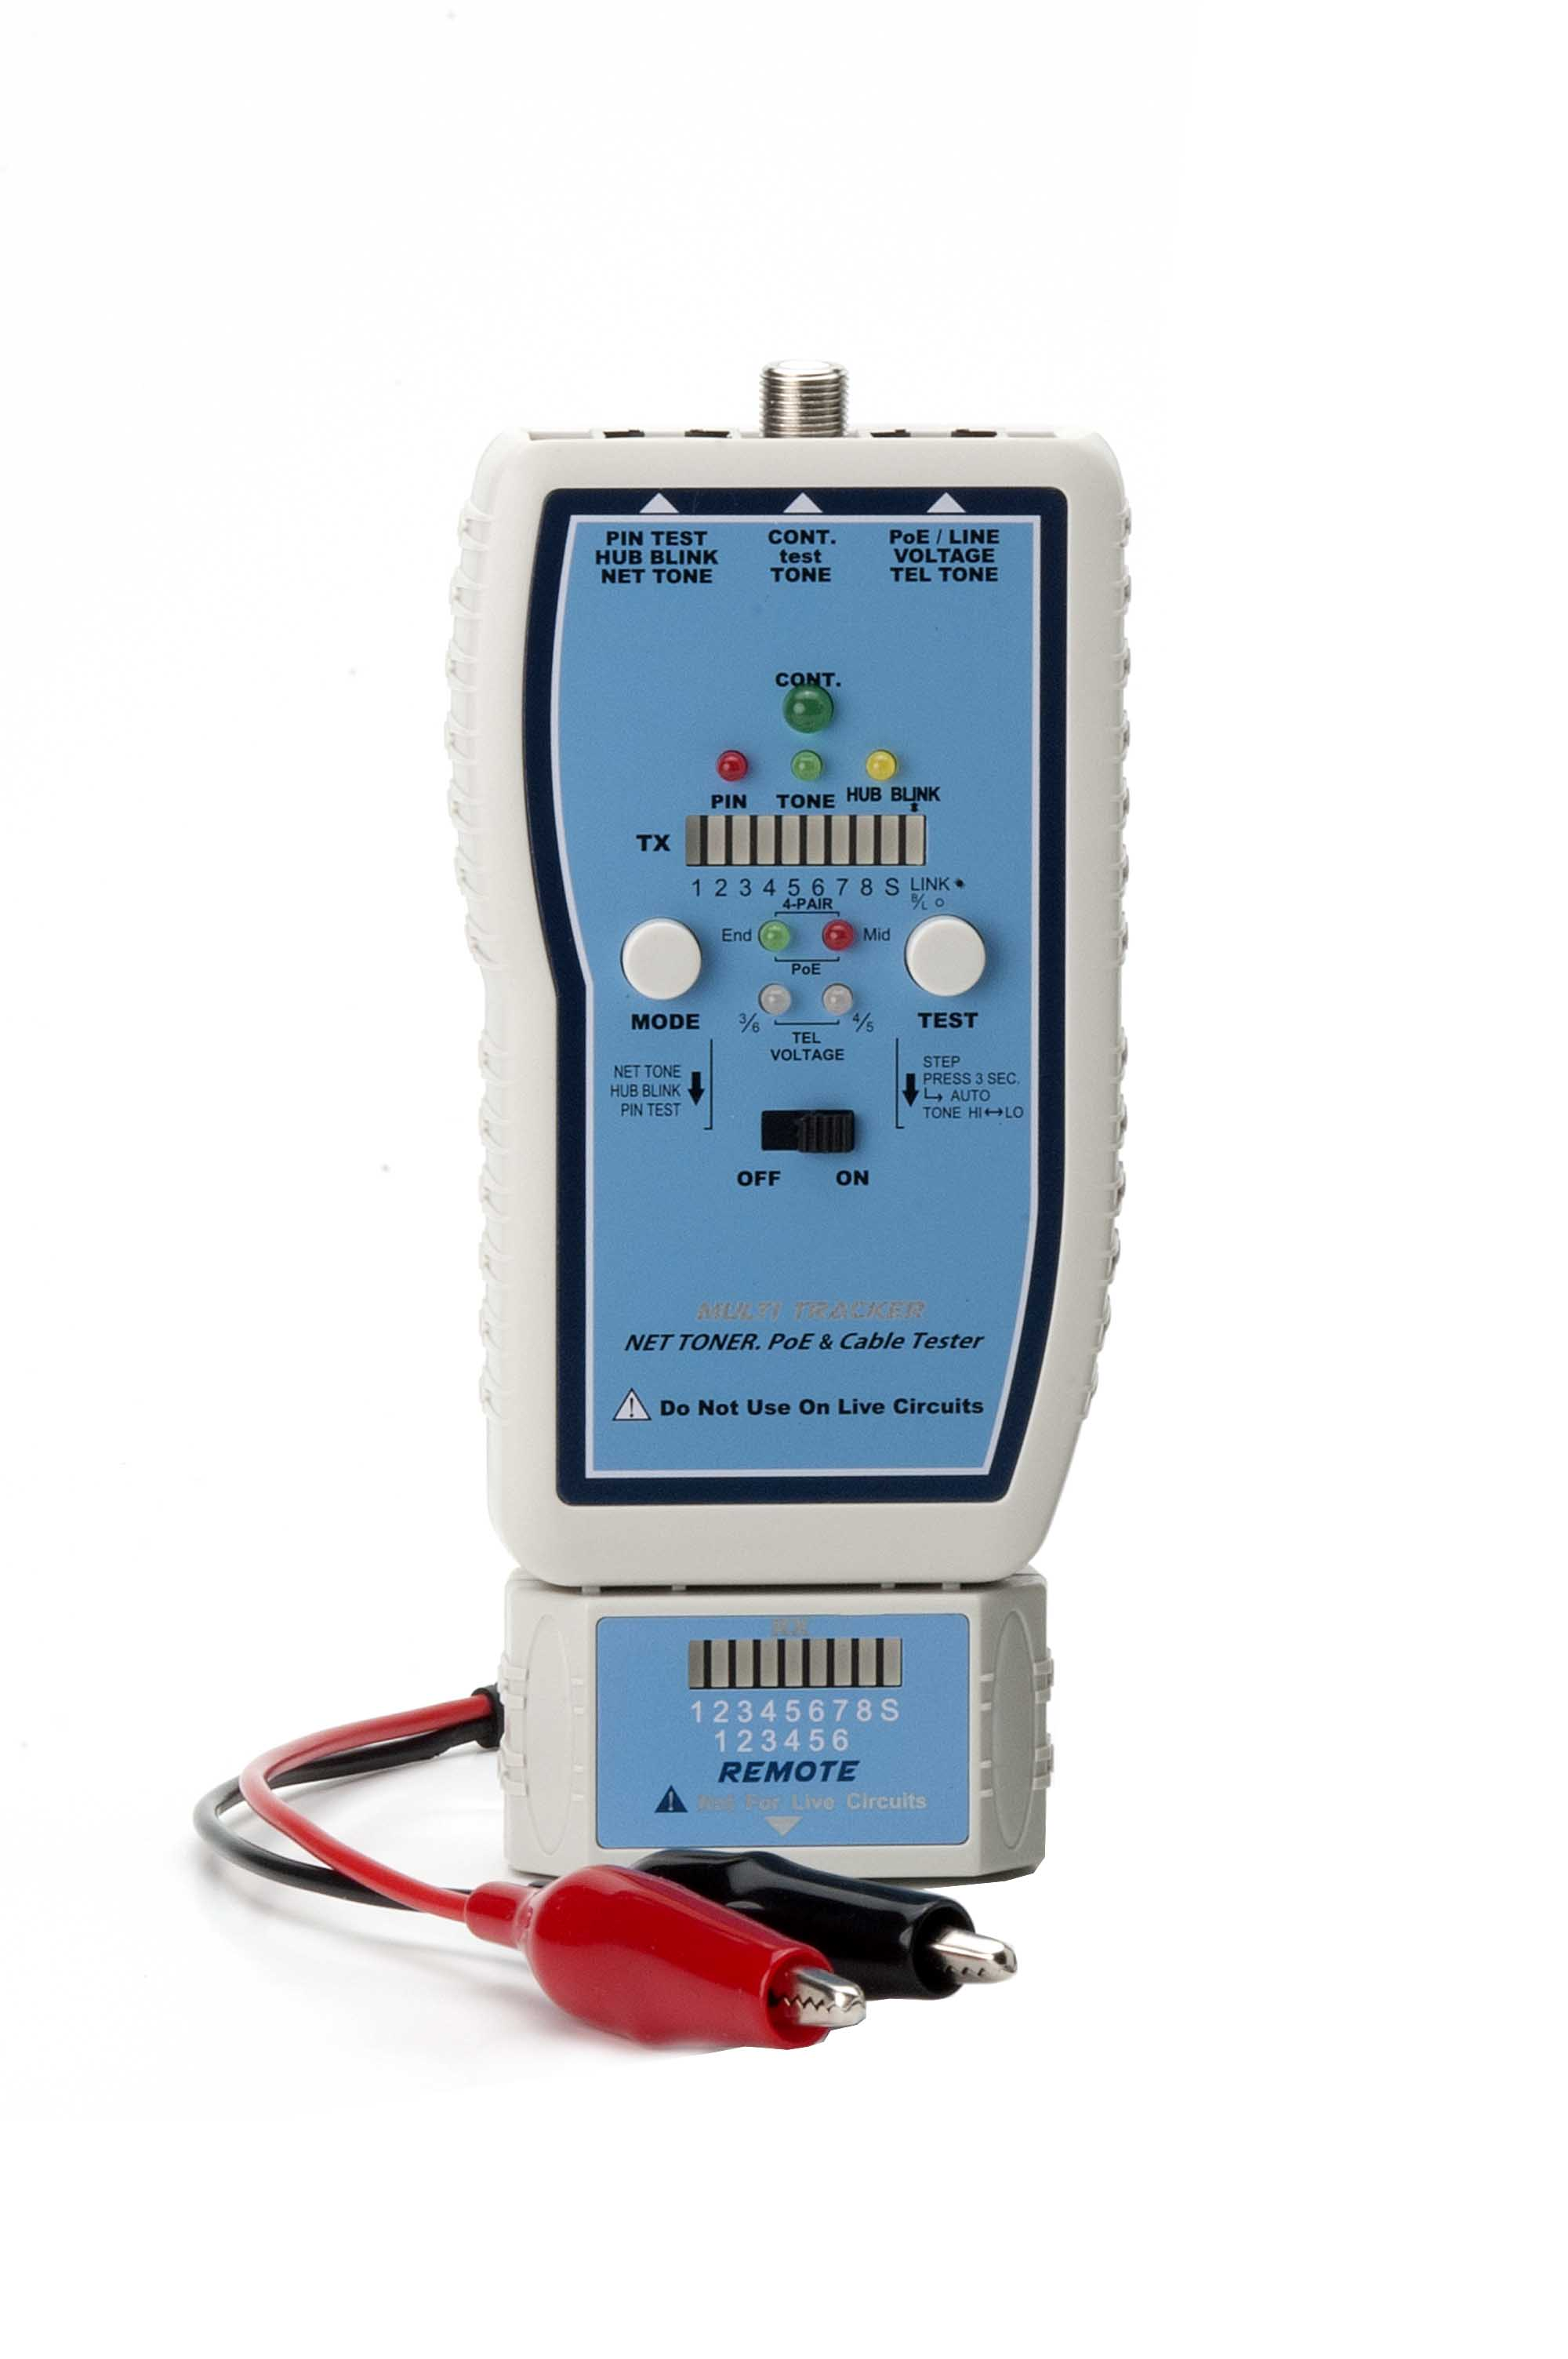 PANSCO, LTD. - Specialized in Cable Testers